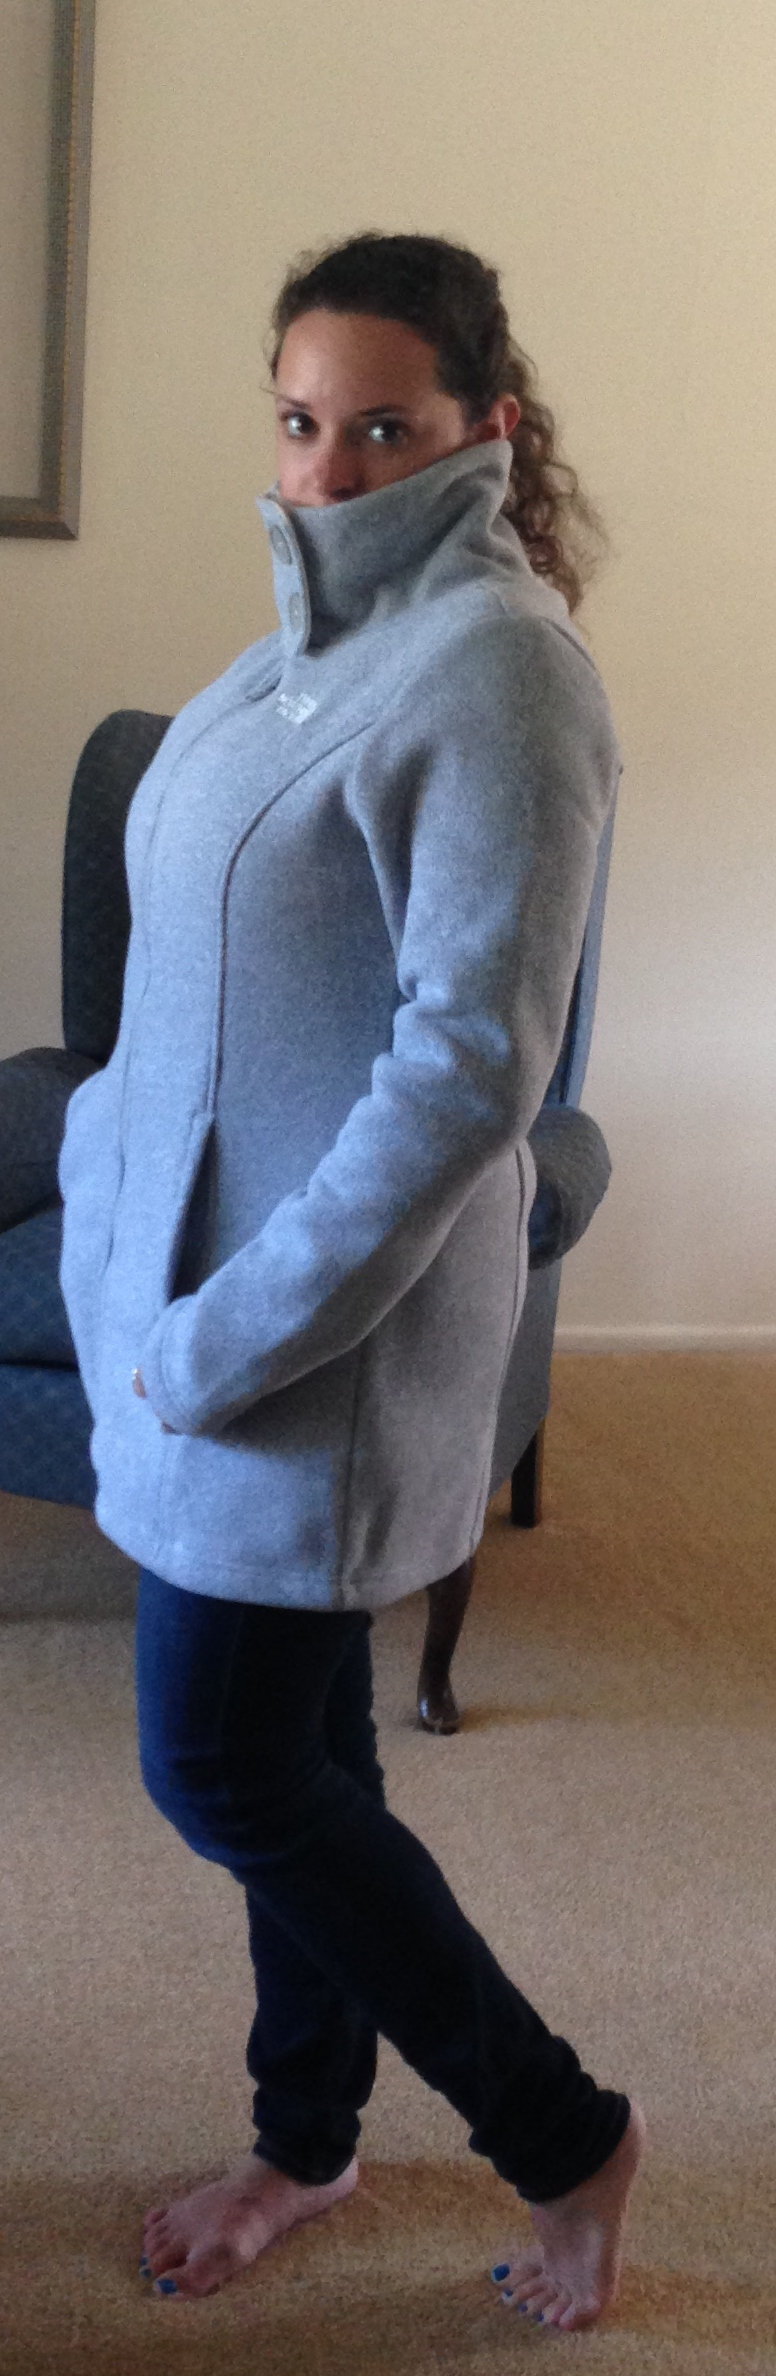 A silly picture showing the collar buttoned up, but then I turned sideways and didn't show the buttons... :-/